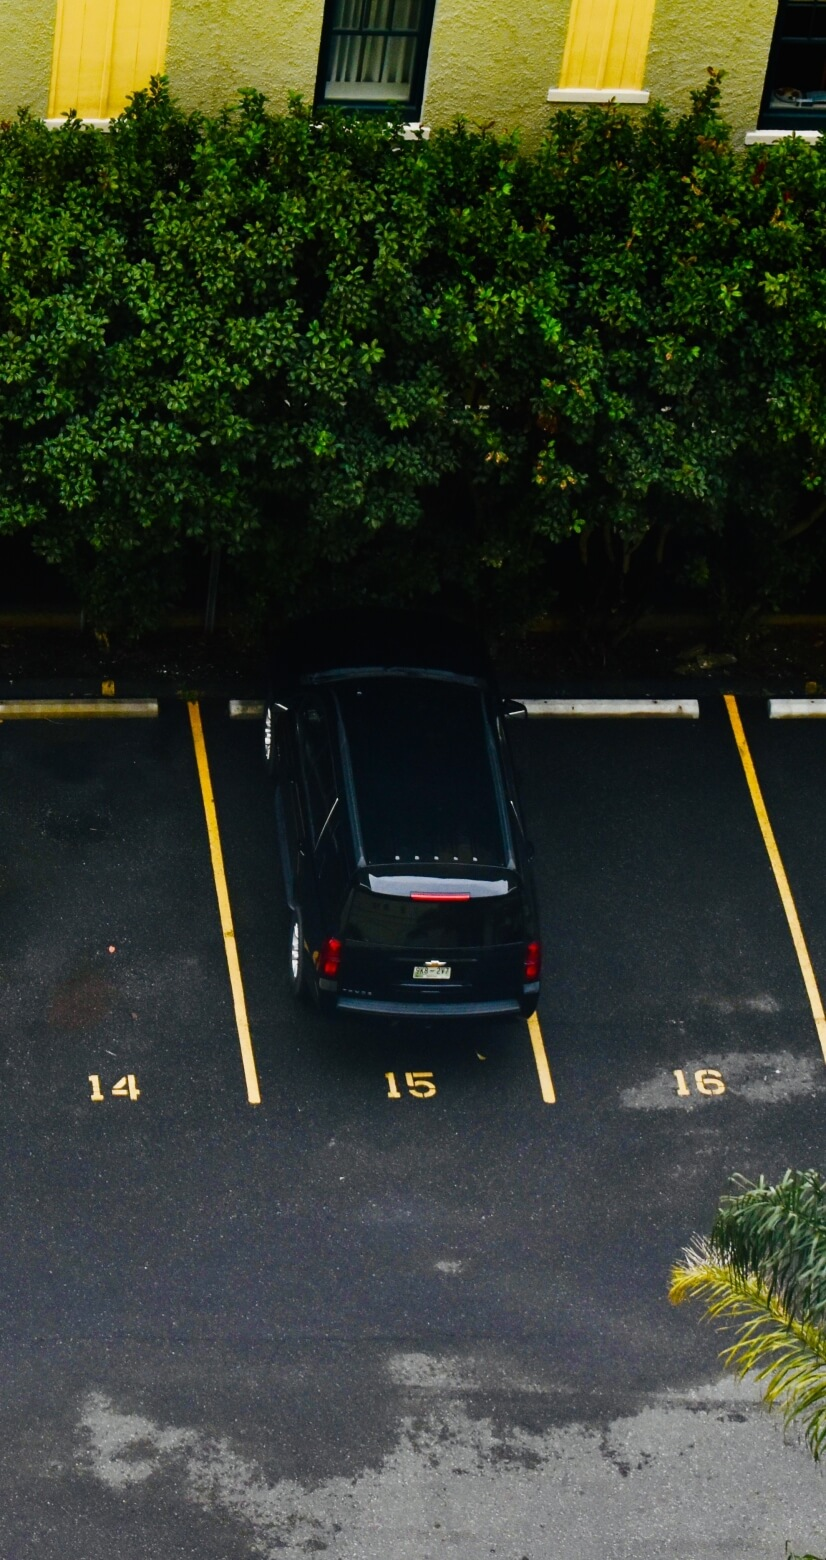 reserved parking spot seen from window